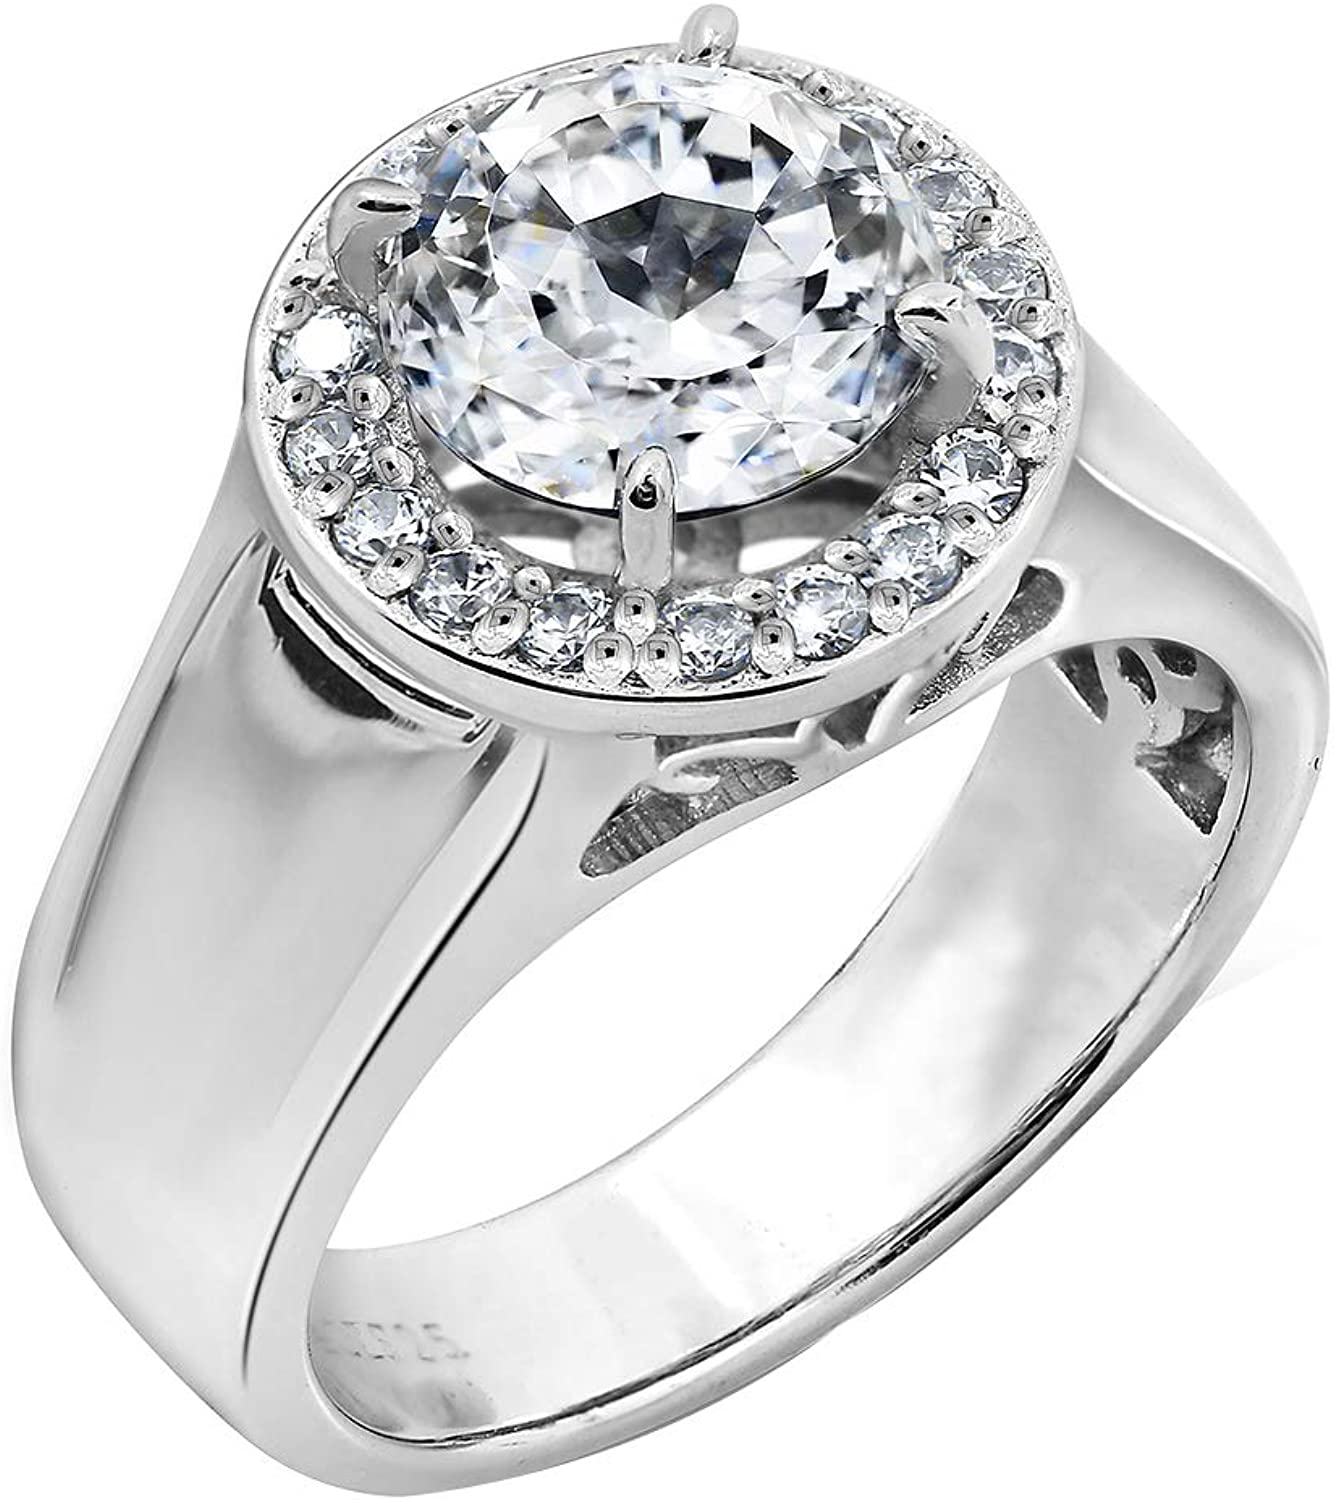 DIAMONBLISS Platinum Plated 70% OFF Outlet Inexpensive Sterling Zirc Silver Cubic 100-Facet